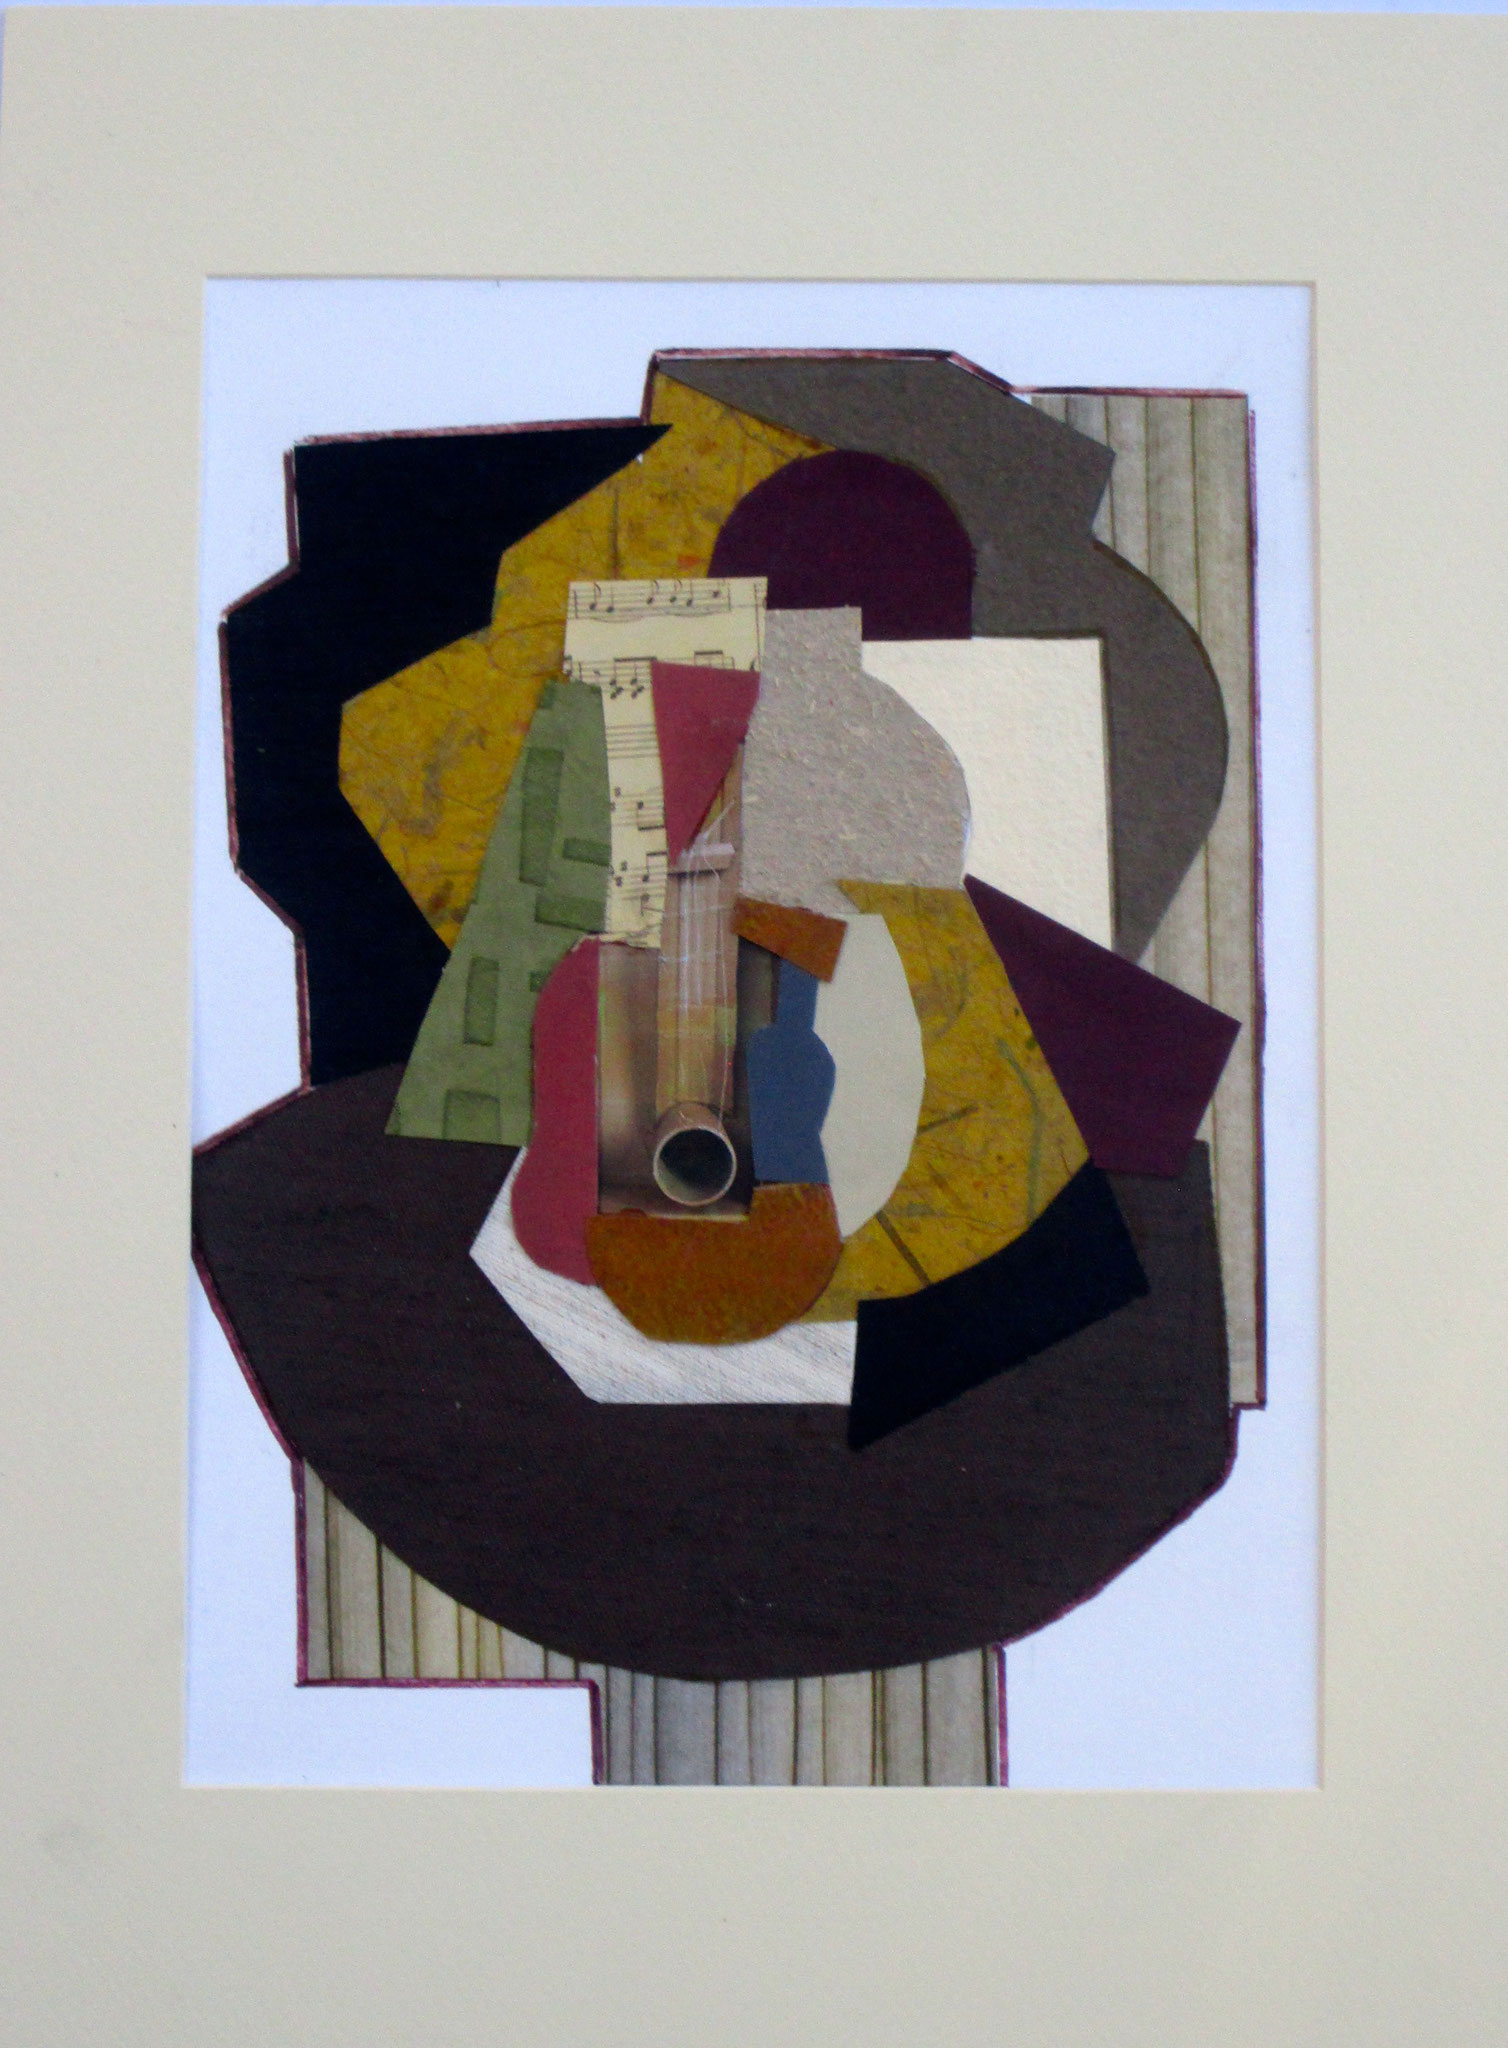 Cubist Guitar, collage on paper, 12 x 16, matted, 2017